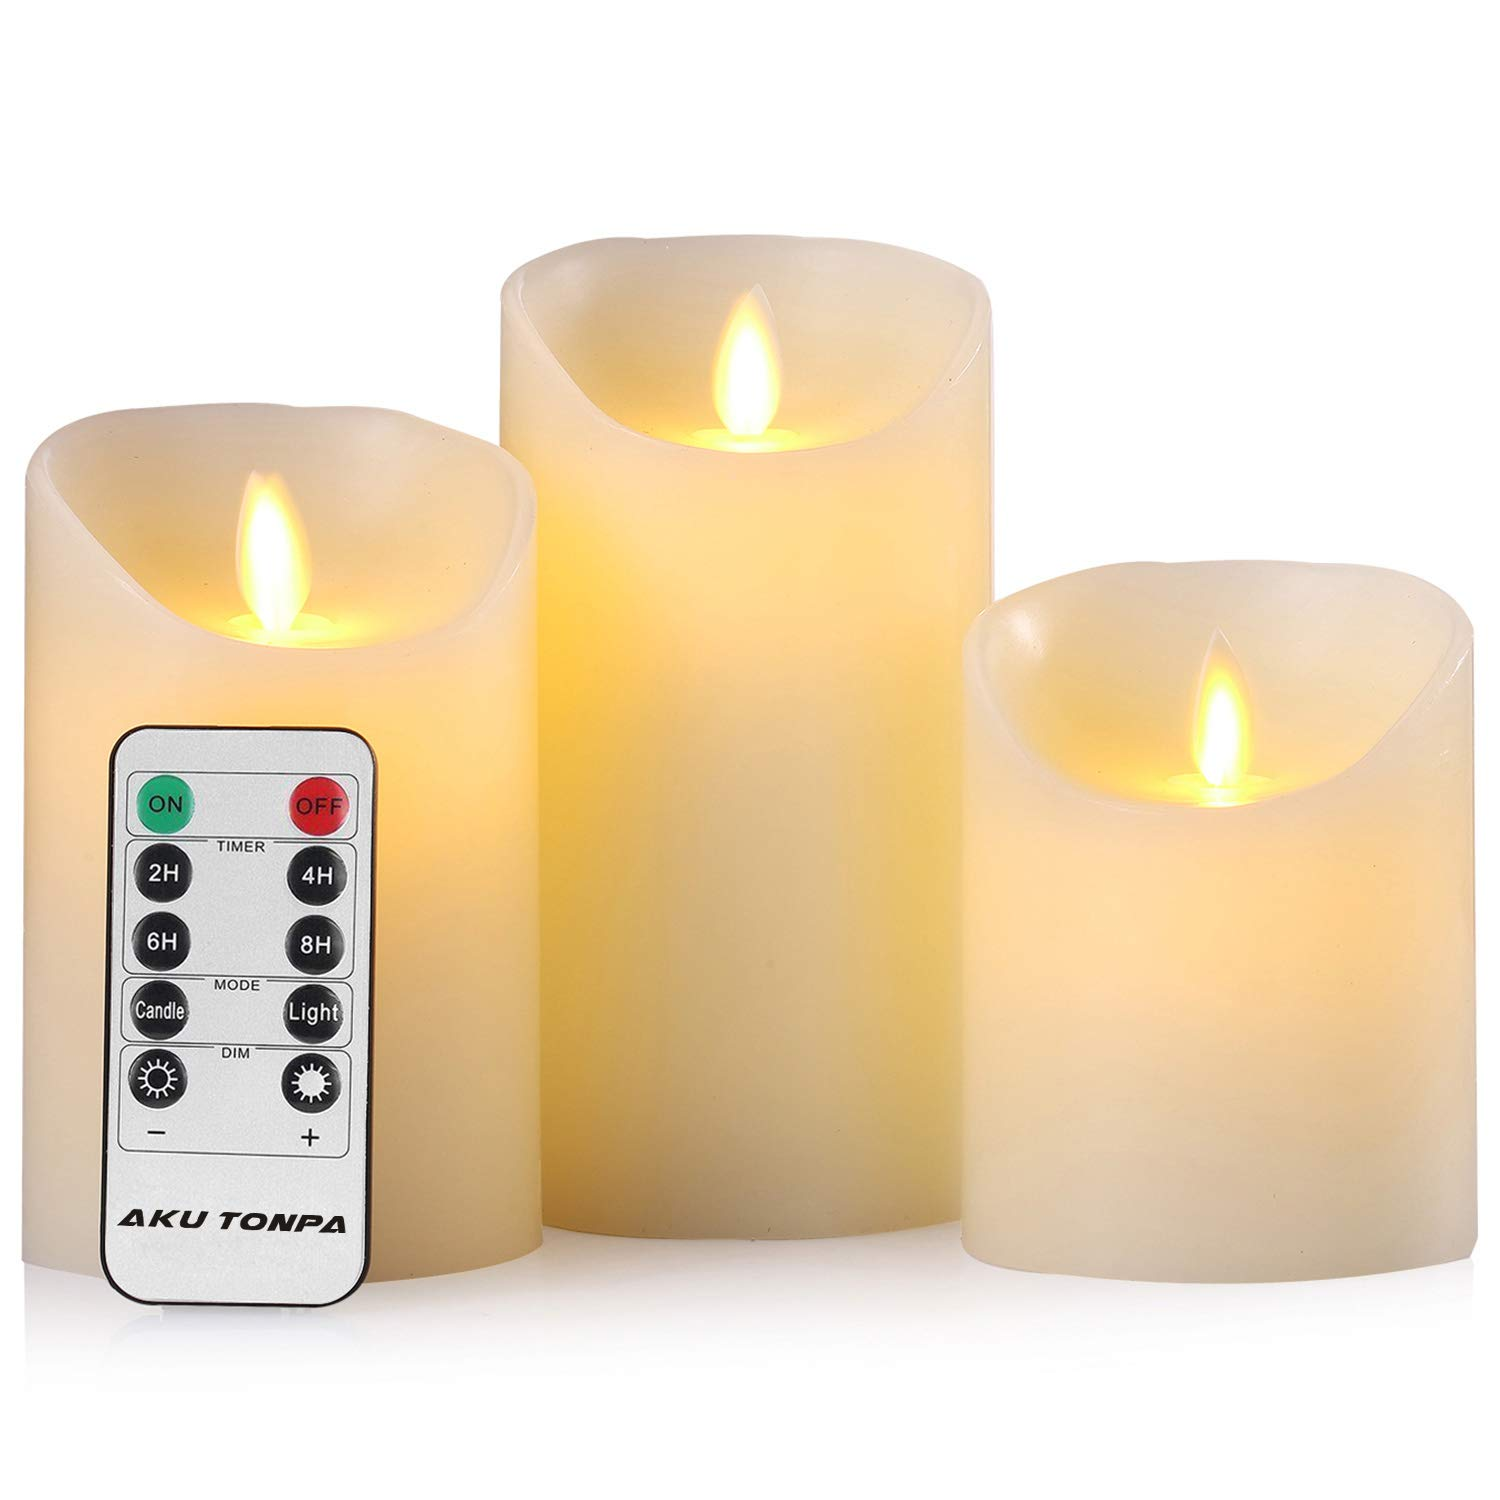 Flameless Candles Battery Operated Pillar Real Wax Flickering Moving Wick Electric LED Candle Sets with Remote Control Cycling 24 Hours Timer by Aku Tonpa, 4'' 5'' 6'' Pack of 3 by Aku Tonpa